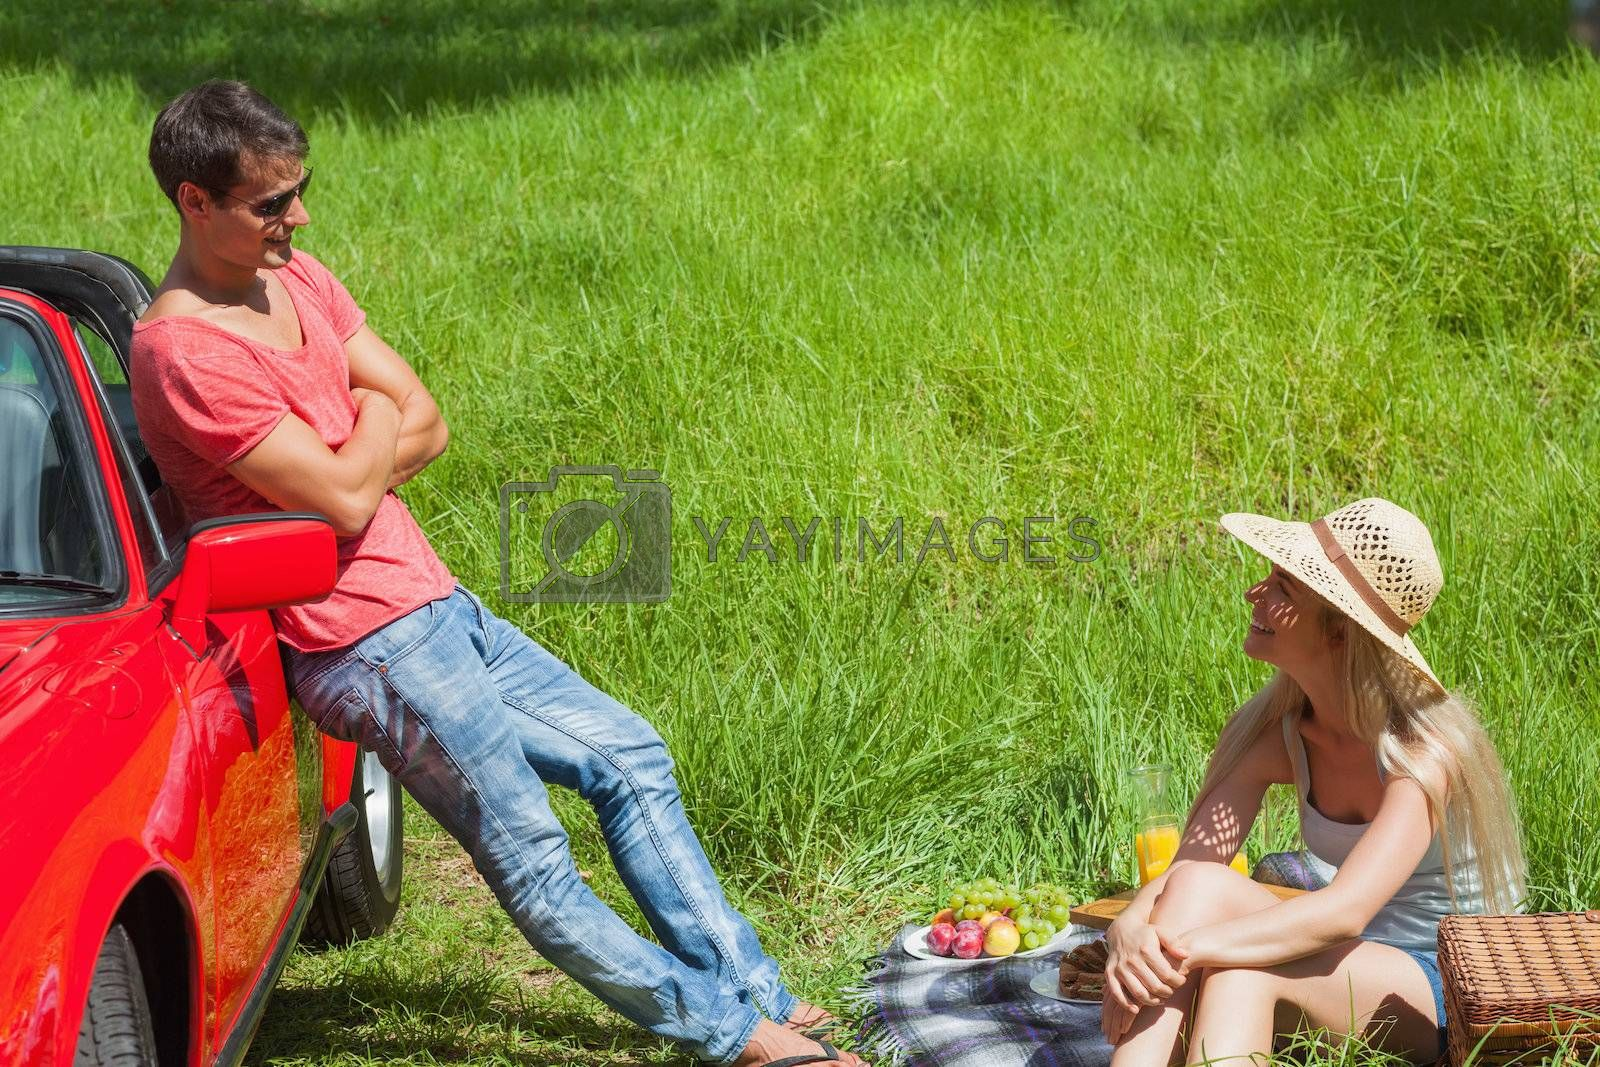 Cheerful couple having picnic together by Wavebreakmedia